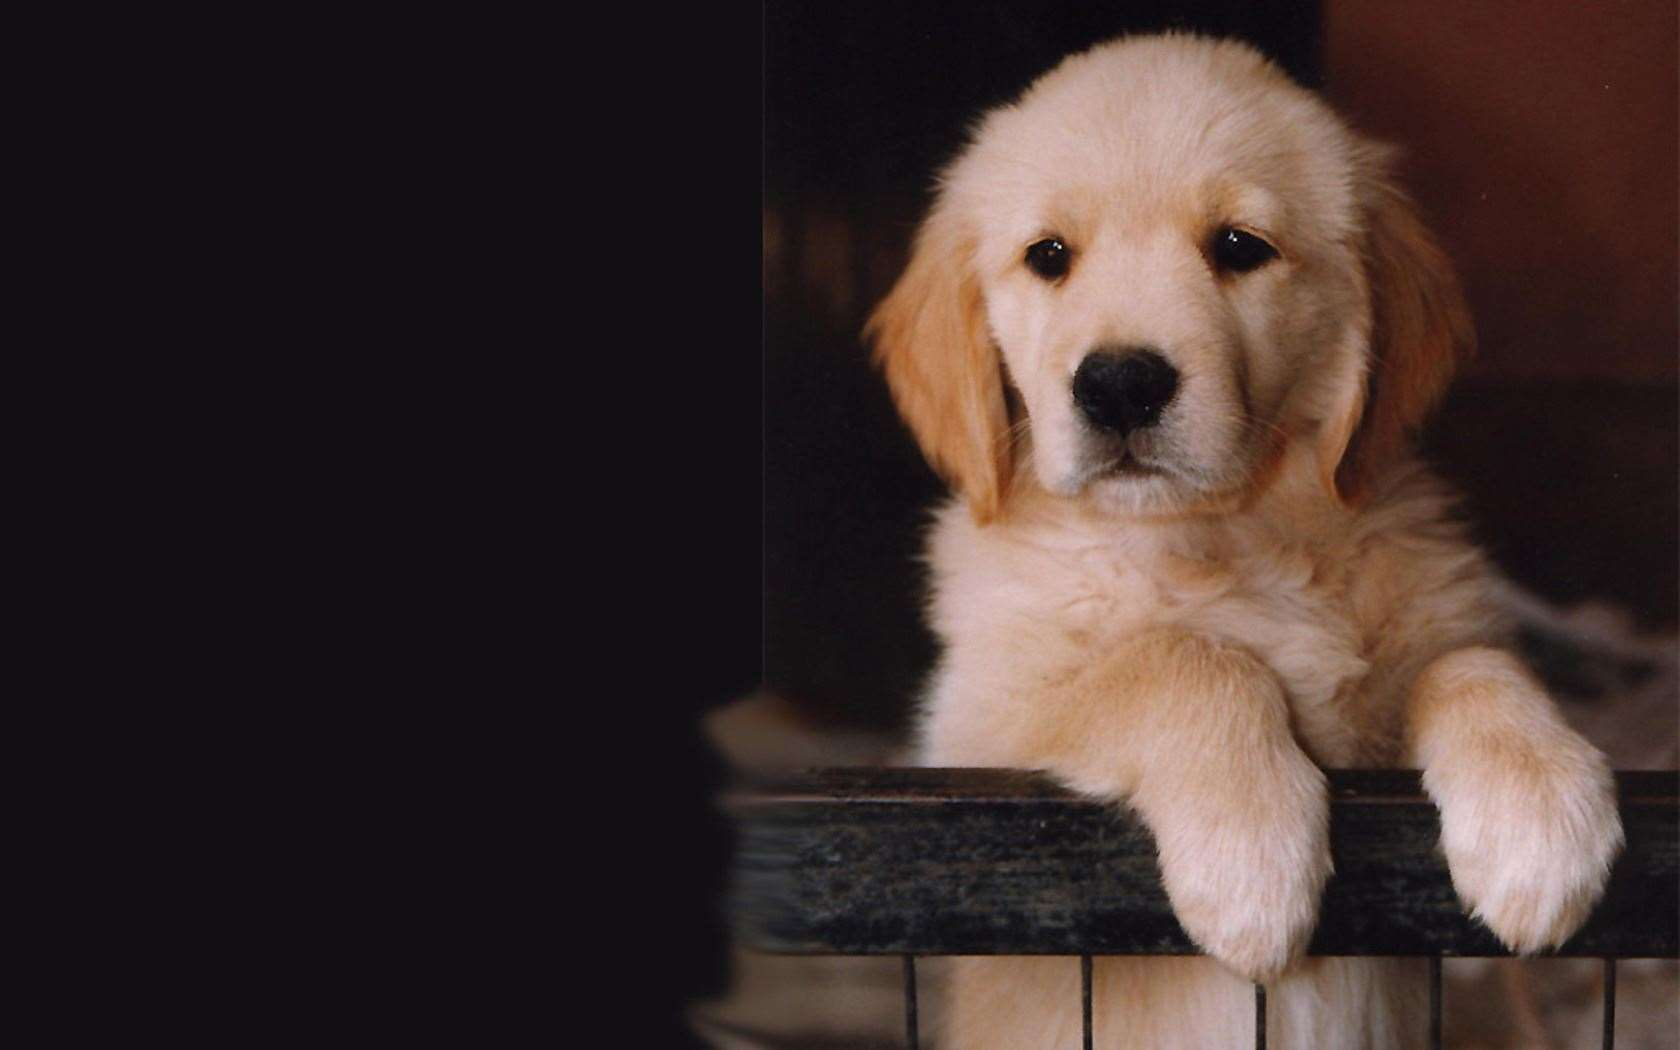 If a puppy carries excess weight, it can impact their bones as they grow. Stock image